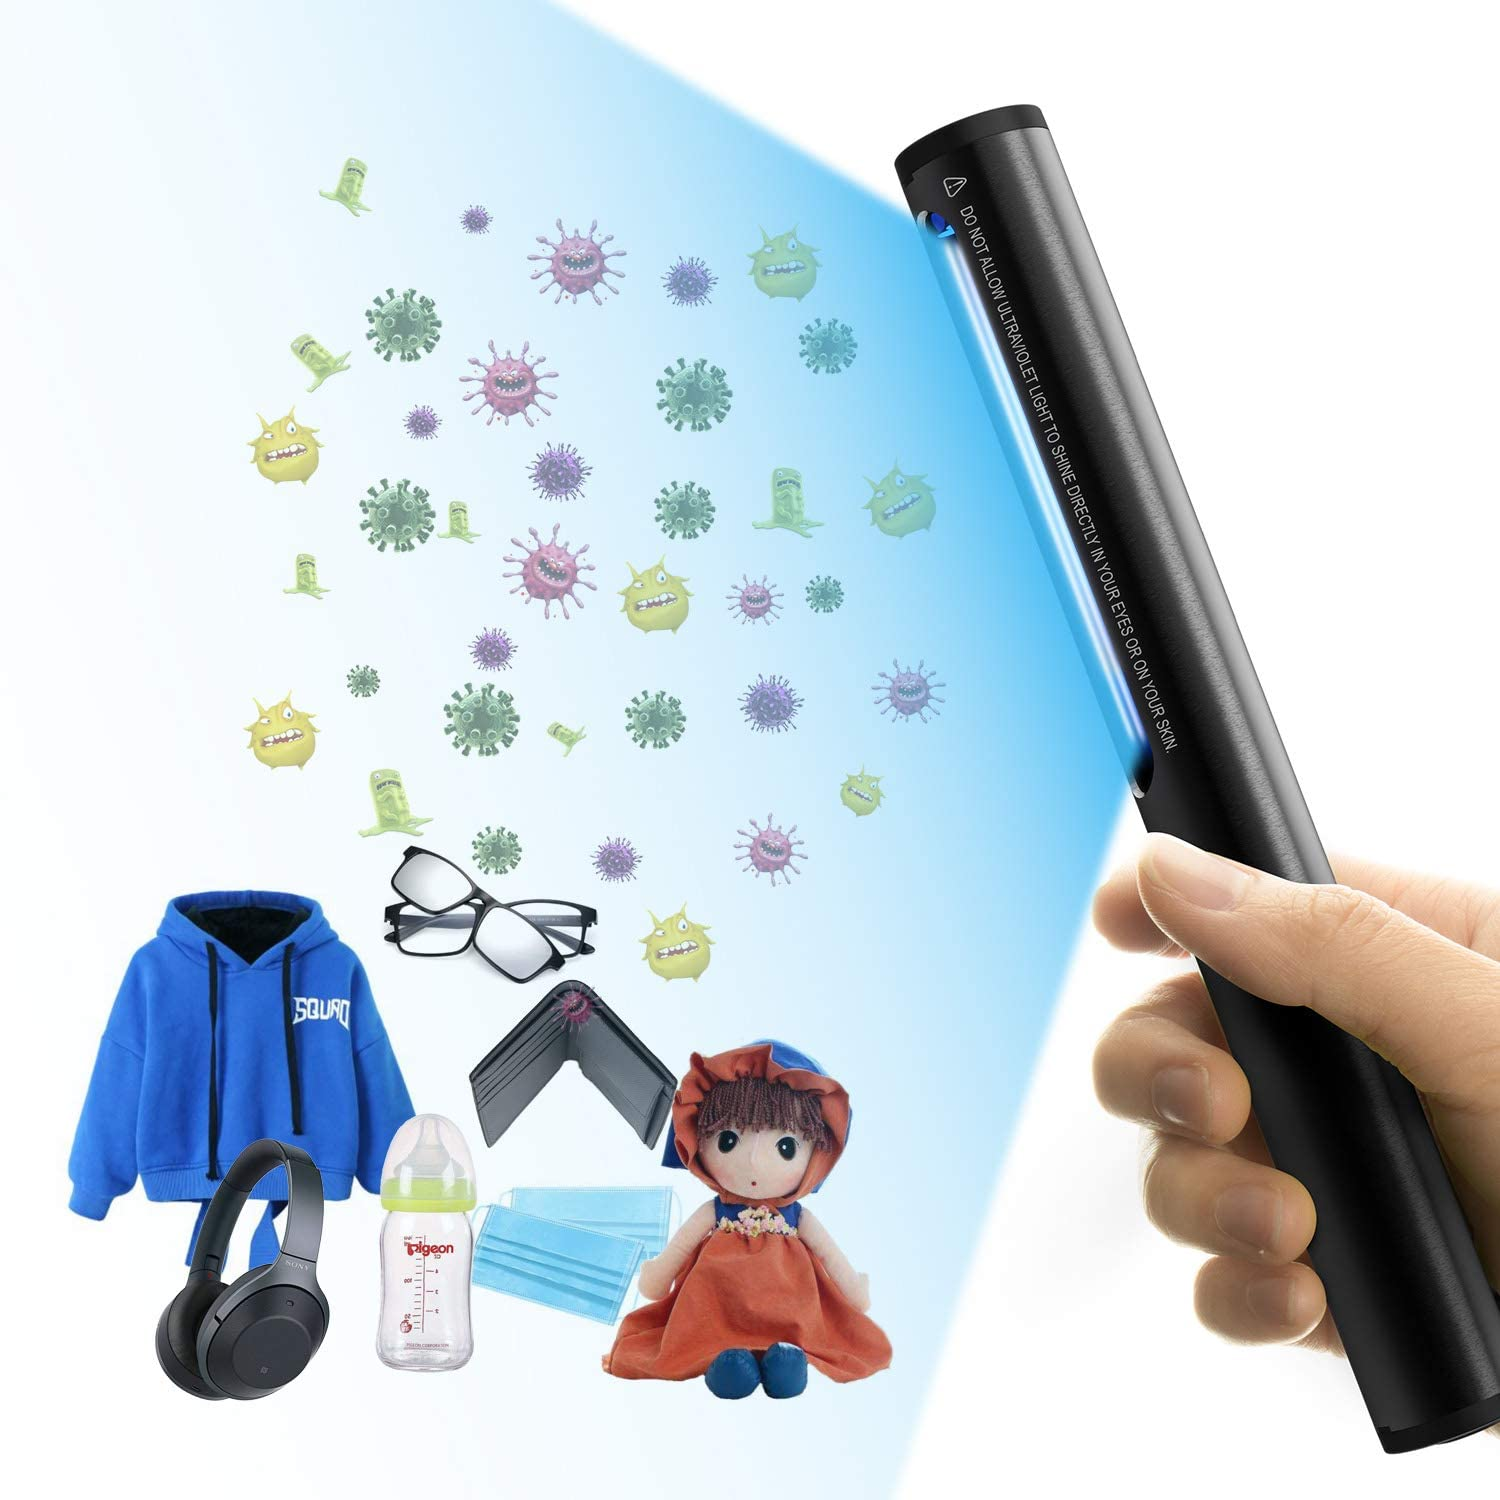 SWIFF Portable Ultraviolet Disinfection Lamp Hand-held Germicidal Wand Sterilization Lamp Disinfectant Without Chemical Substances Suitable for Underwear,Footwear Bedroom,Toilet,Car,Pet,etc